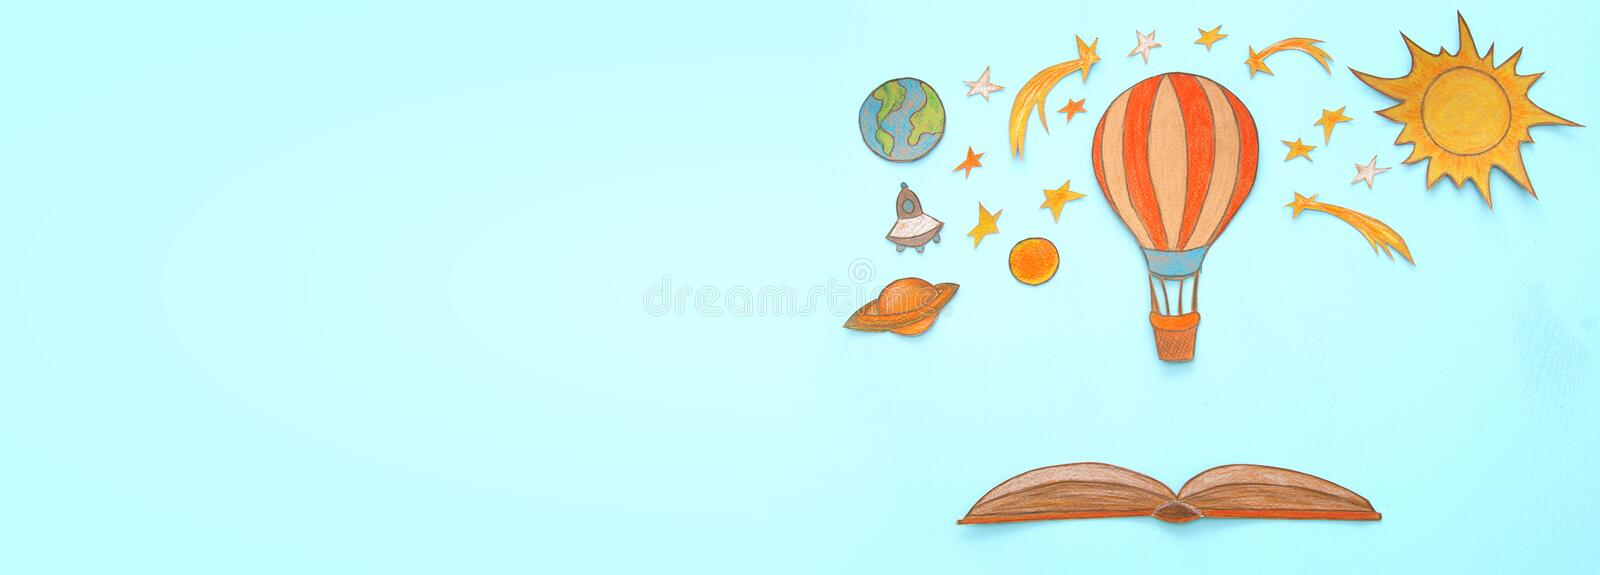 Banner of Hot air balloon, space elements shapes cut from paper and painted over wooden blue background. royalty free illustration